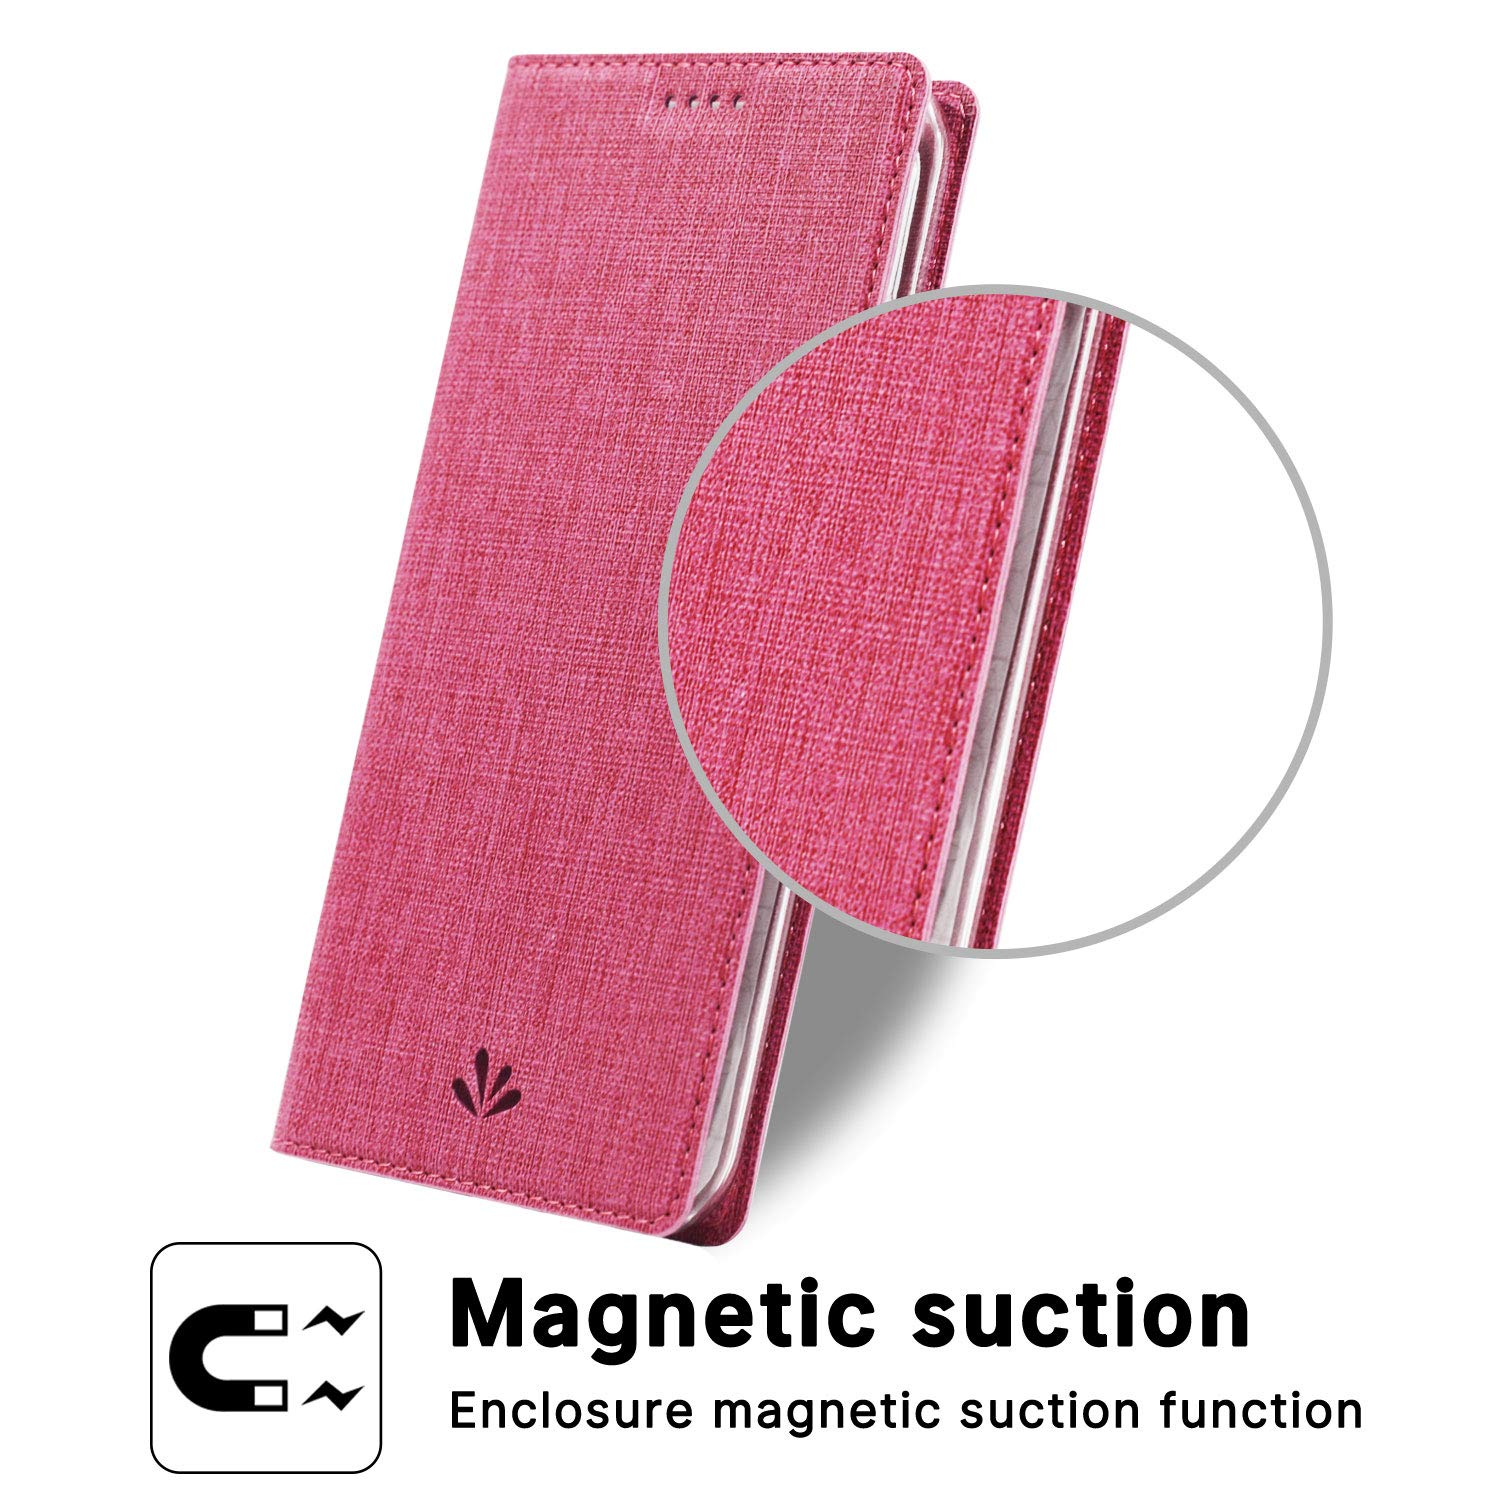 Mix 3, Black Simicoo Xiaomi Mi Mix 3 Flip PU Leather Slim Fit case Card Holster Stand Magnetic Cover Clear Silicone TPU Full Body Shockproof Pocket Thin Wallet Case for Xiaomi Mi Mix 3